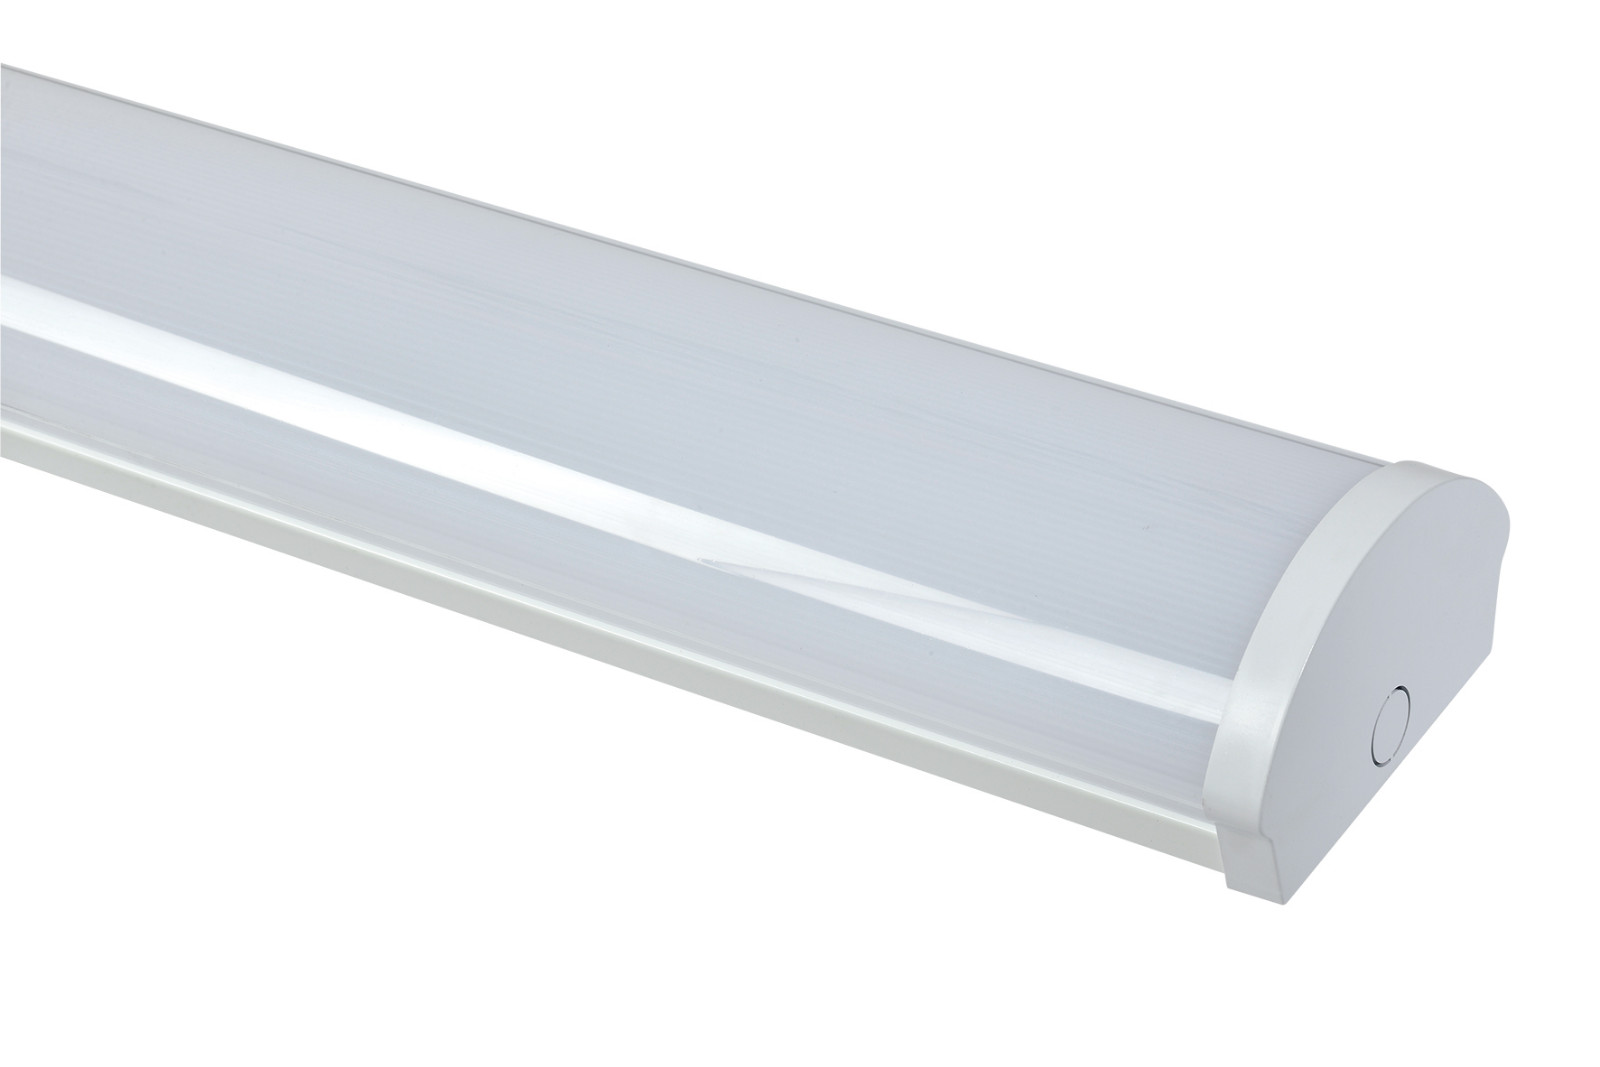 Halcon hot selling led light for false ceiling directly sale for school-2